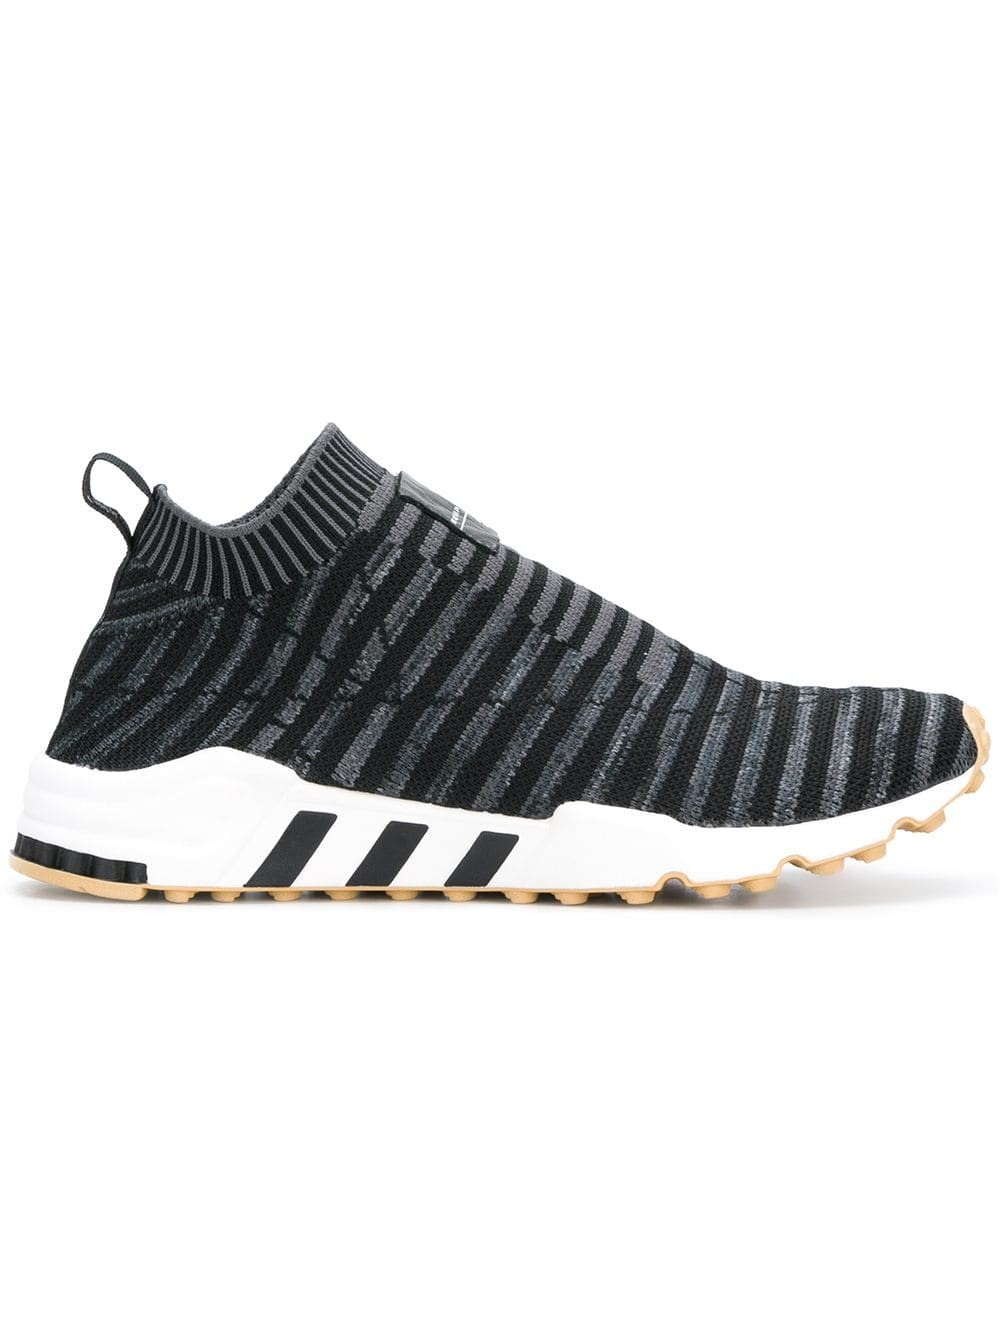 Adidas Originals Equipment Support SK PK Mujer | B37536 | Negras